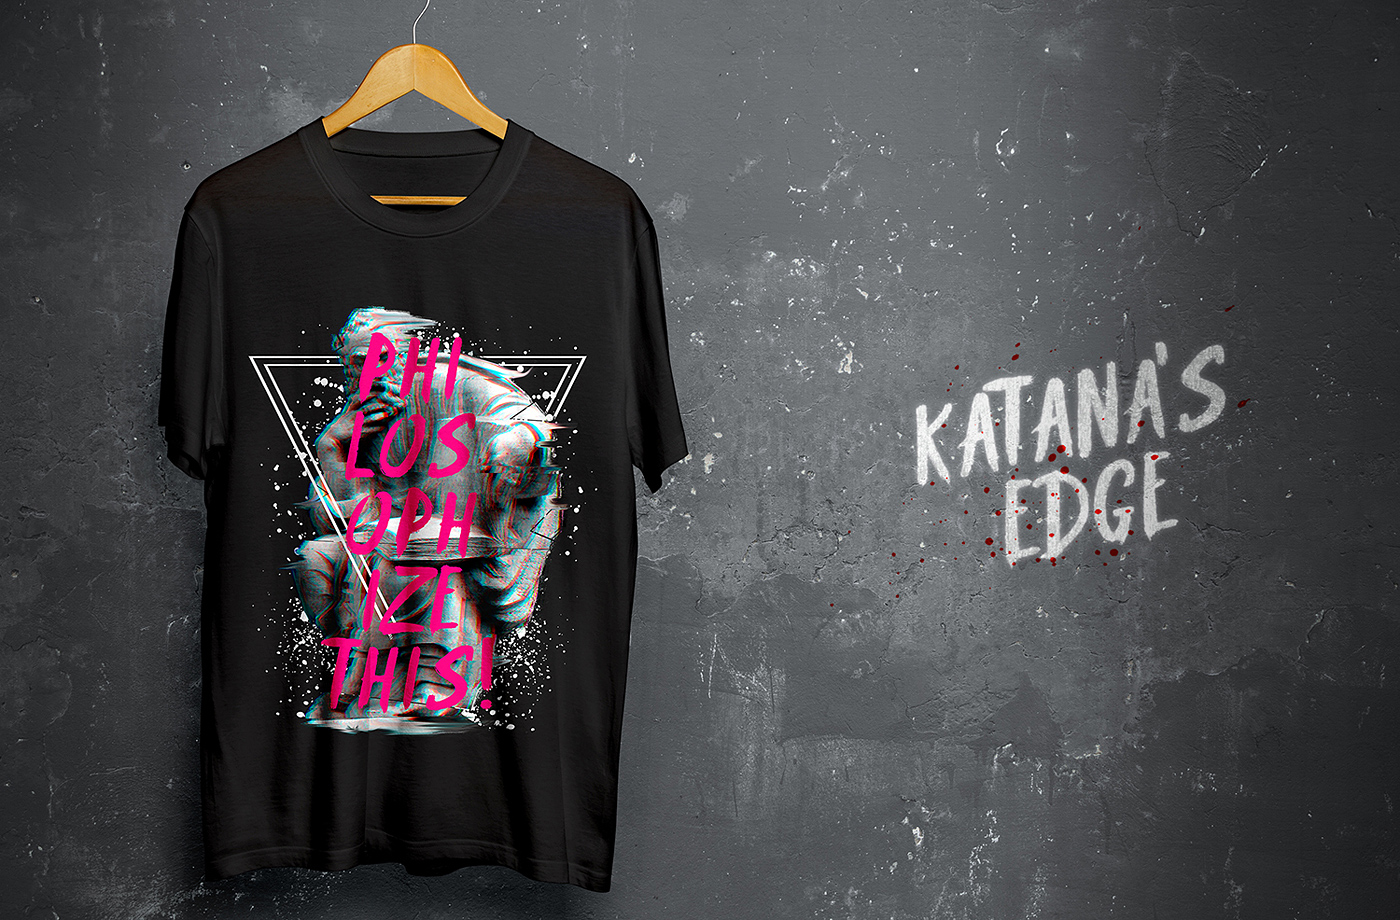 katanas-edge-shirt